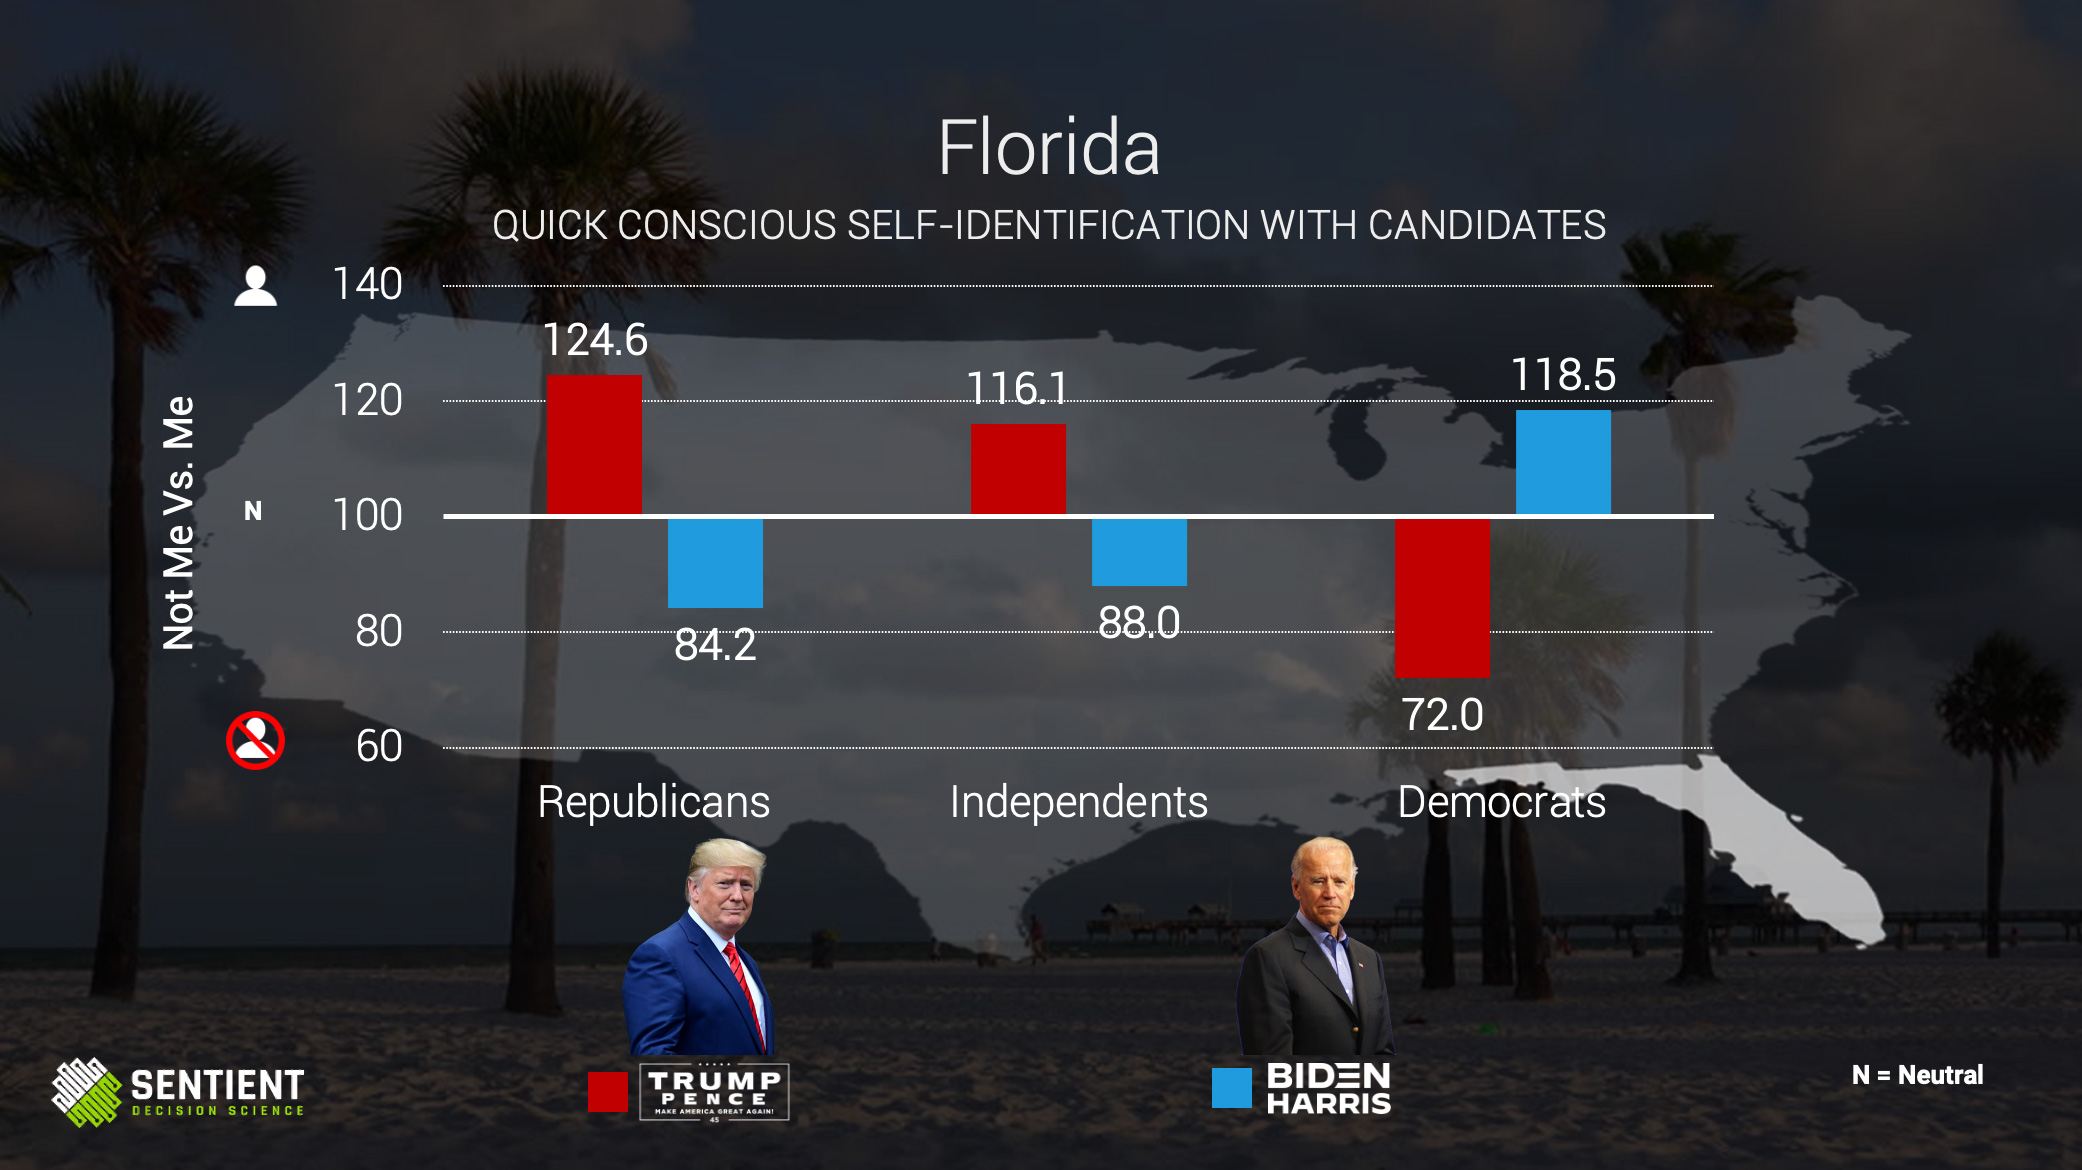 Florida Quick Conscious Self-ID of Candidates